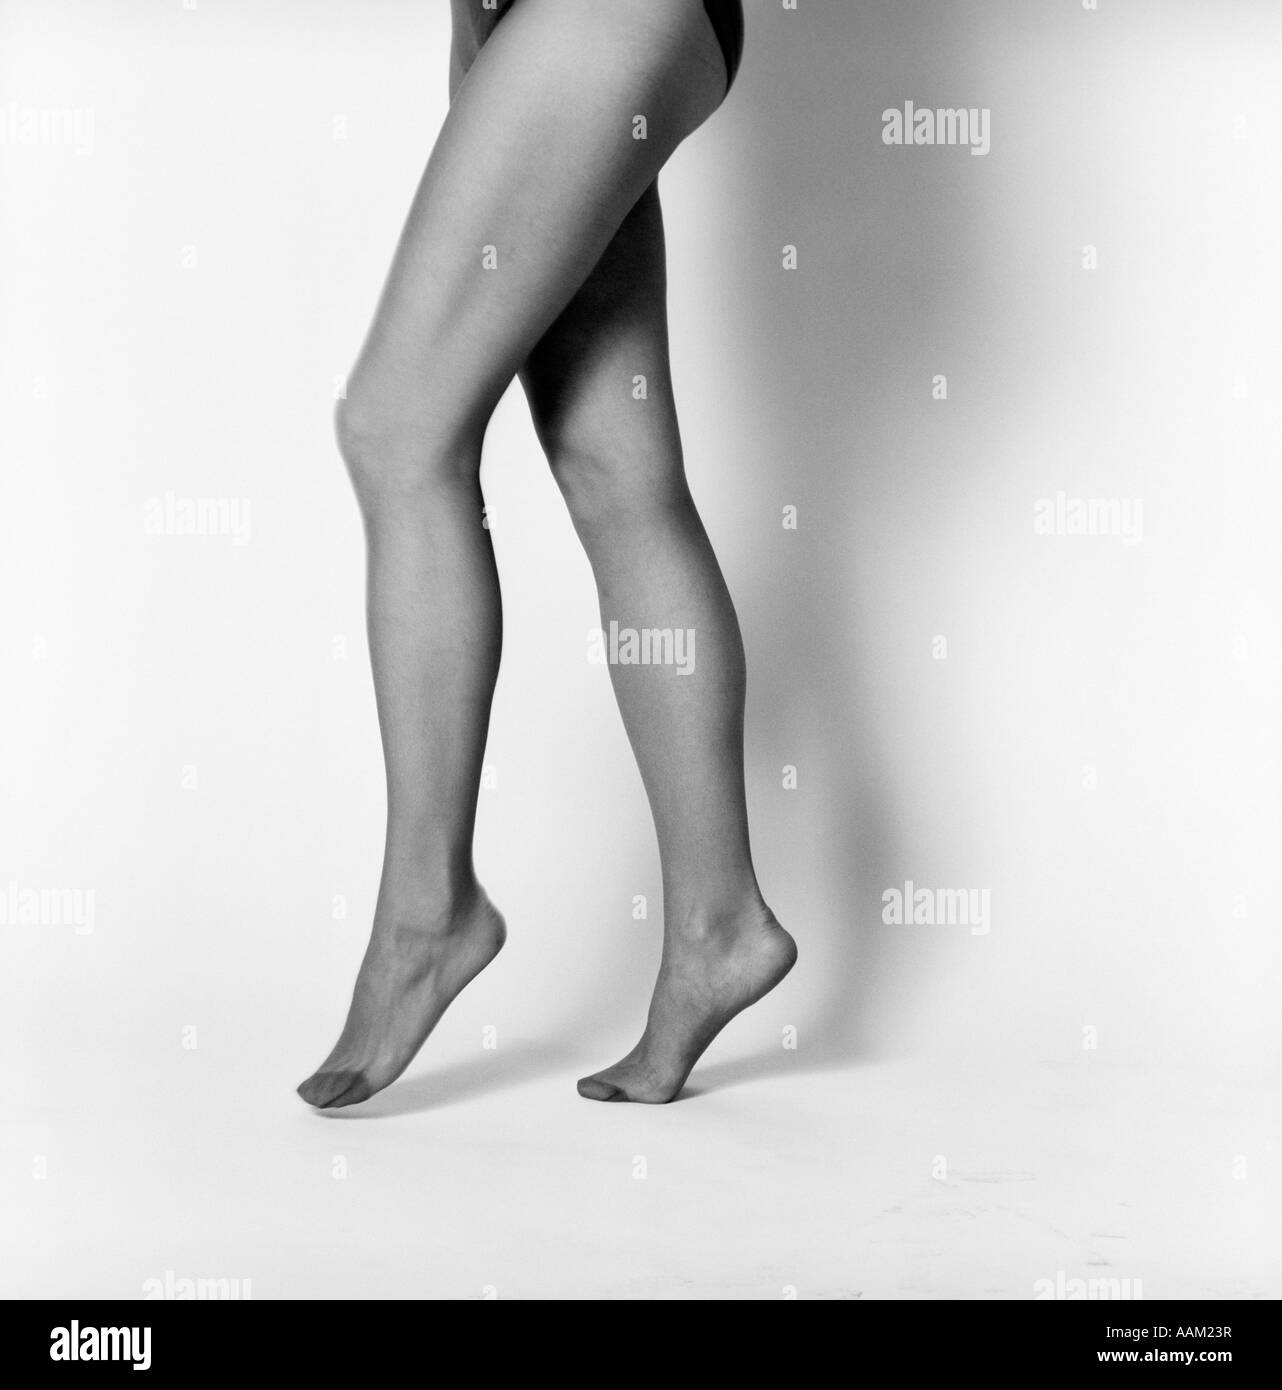 5ee1a79caeccc 1970s WOMAN'S LEGS FROM HIP DOWN STANDING ON TOES WEARING PAIR OF PANTY  HOSE - Stock